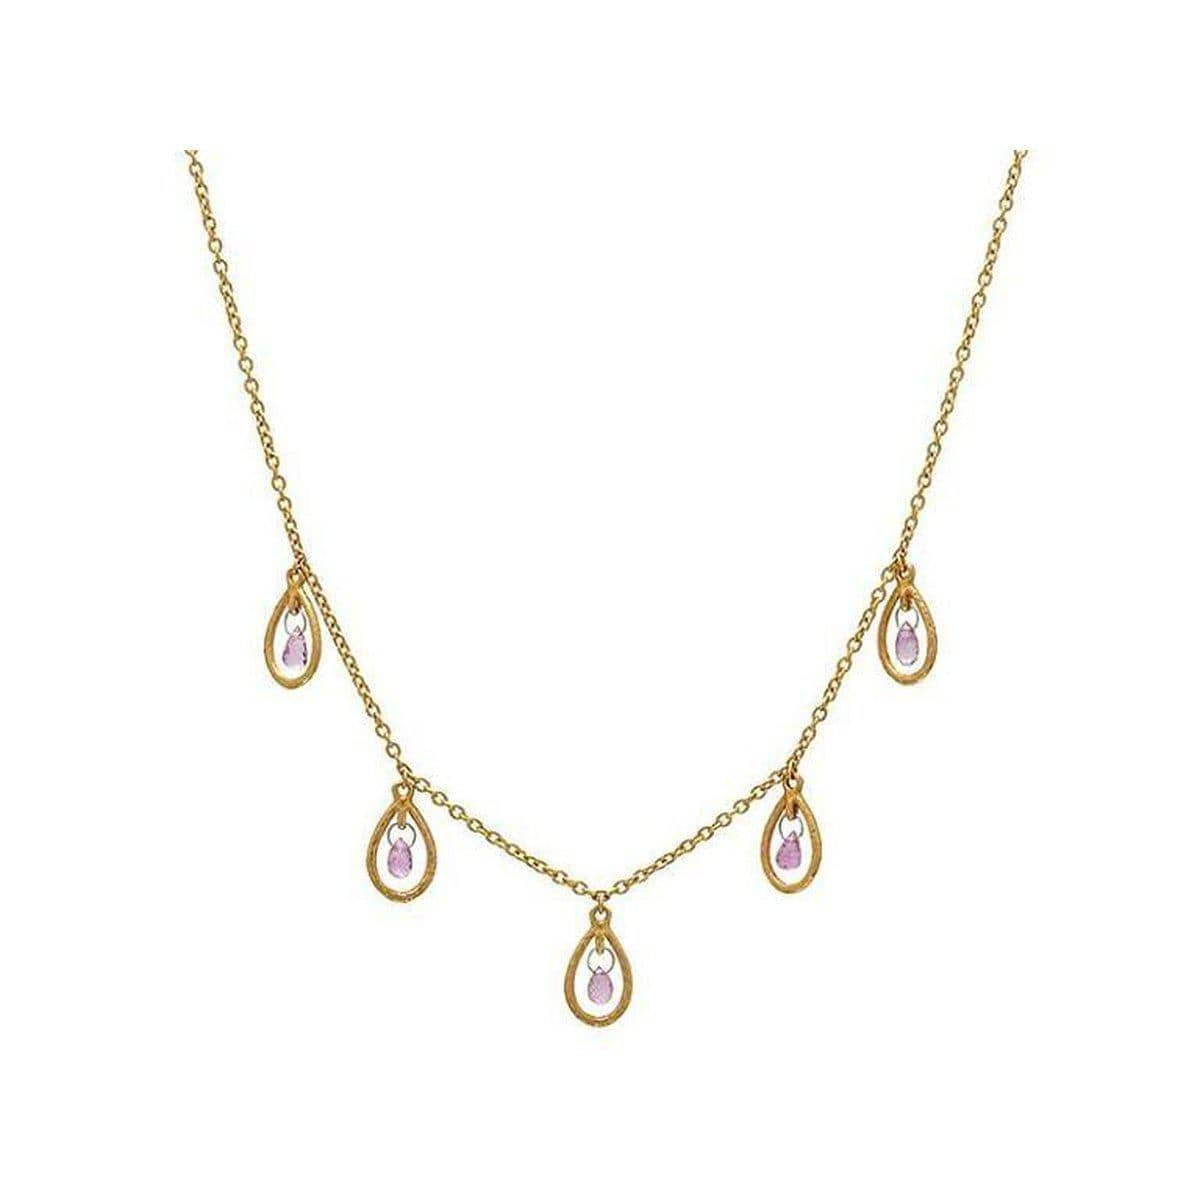 Delicate Hue 24K Gold Sapphire Necklace - CHN-FSB-5FR-5PN-18-GURHAN-Renee Taylor Gallery